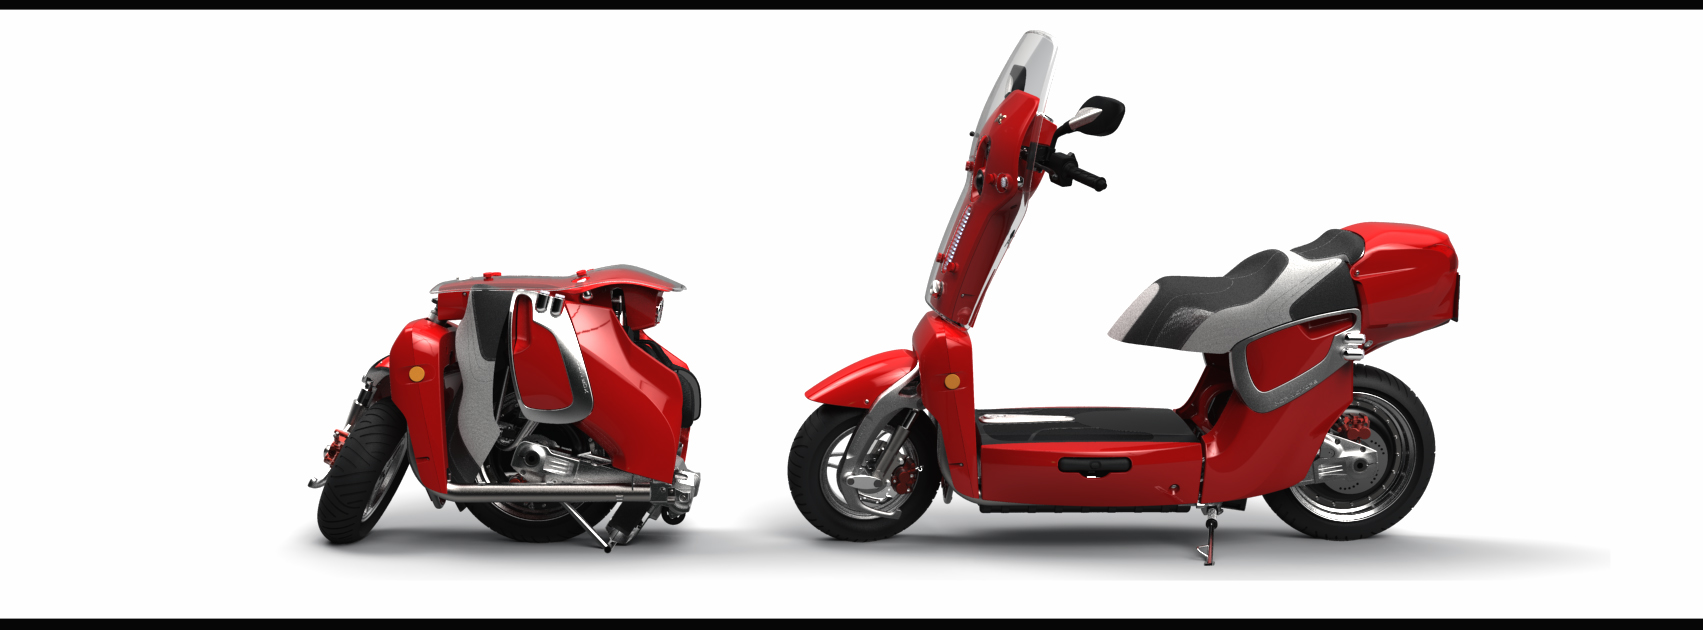 electric scooter tomahawk mopeds. Black Bedroom Furniture Sets. Home Design Ideas